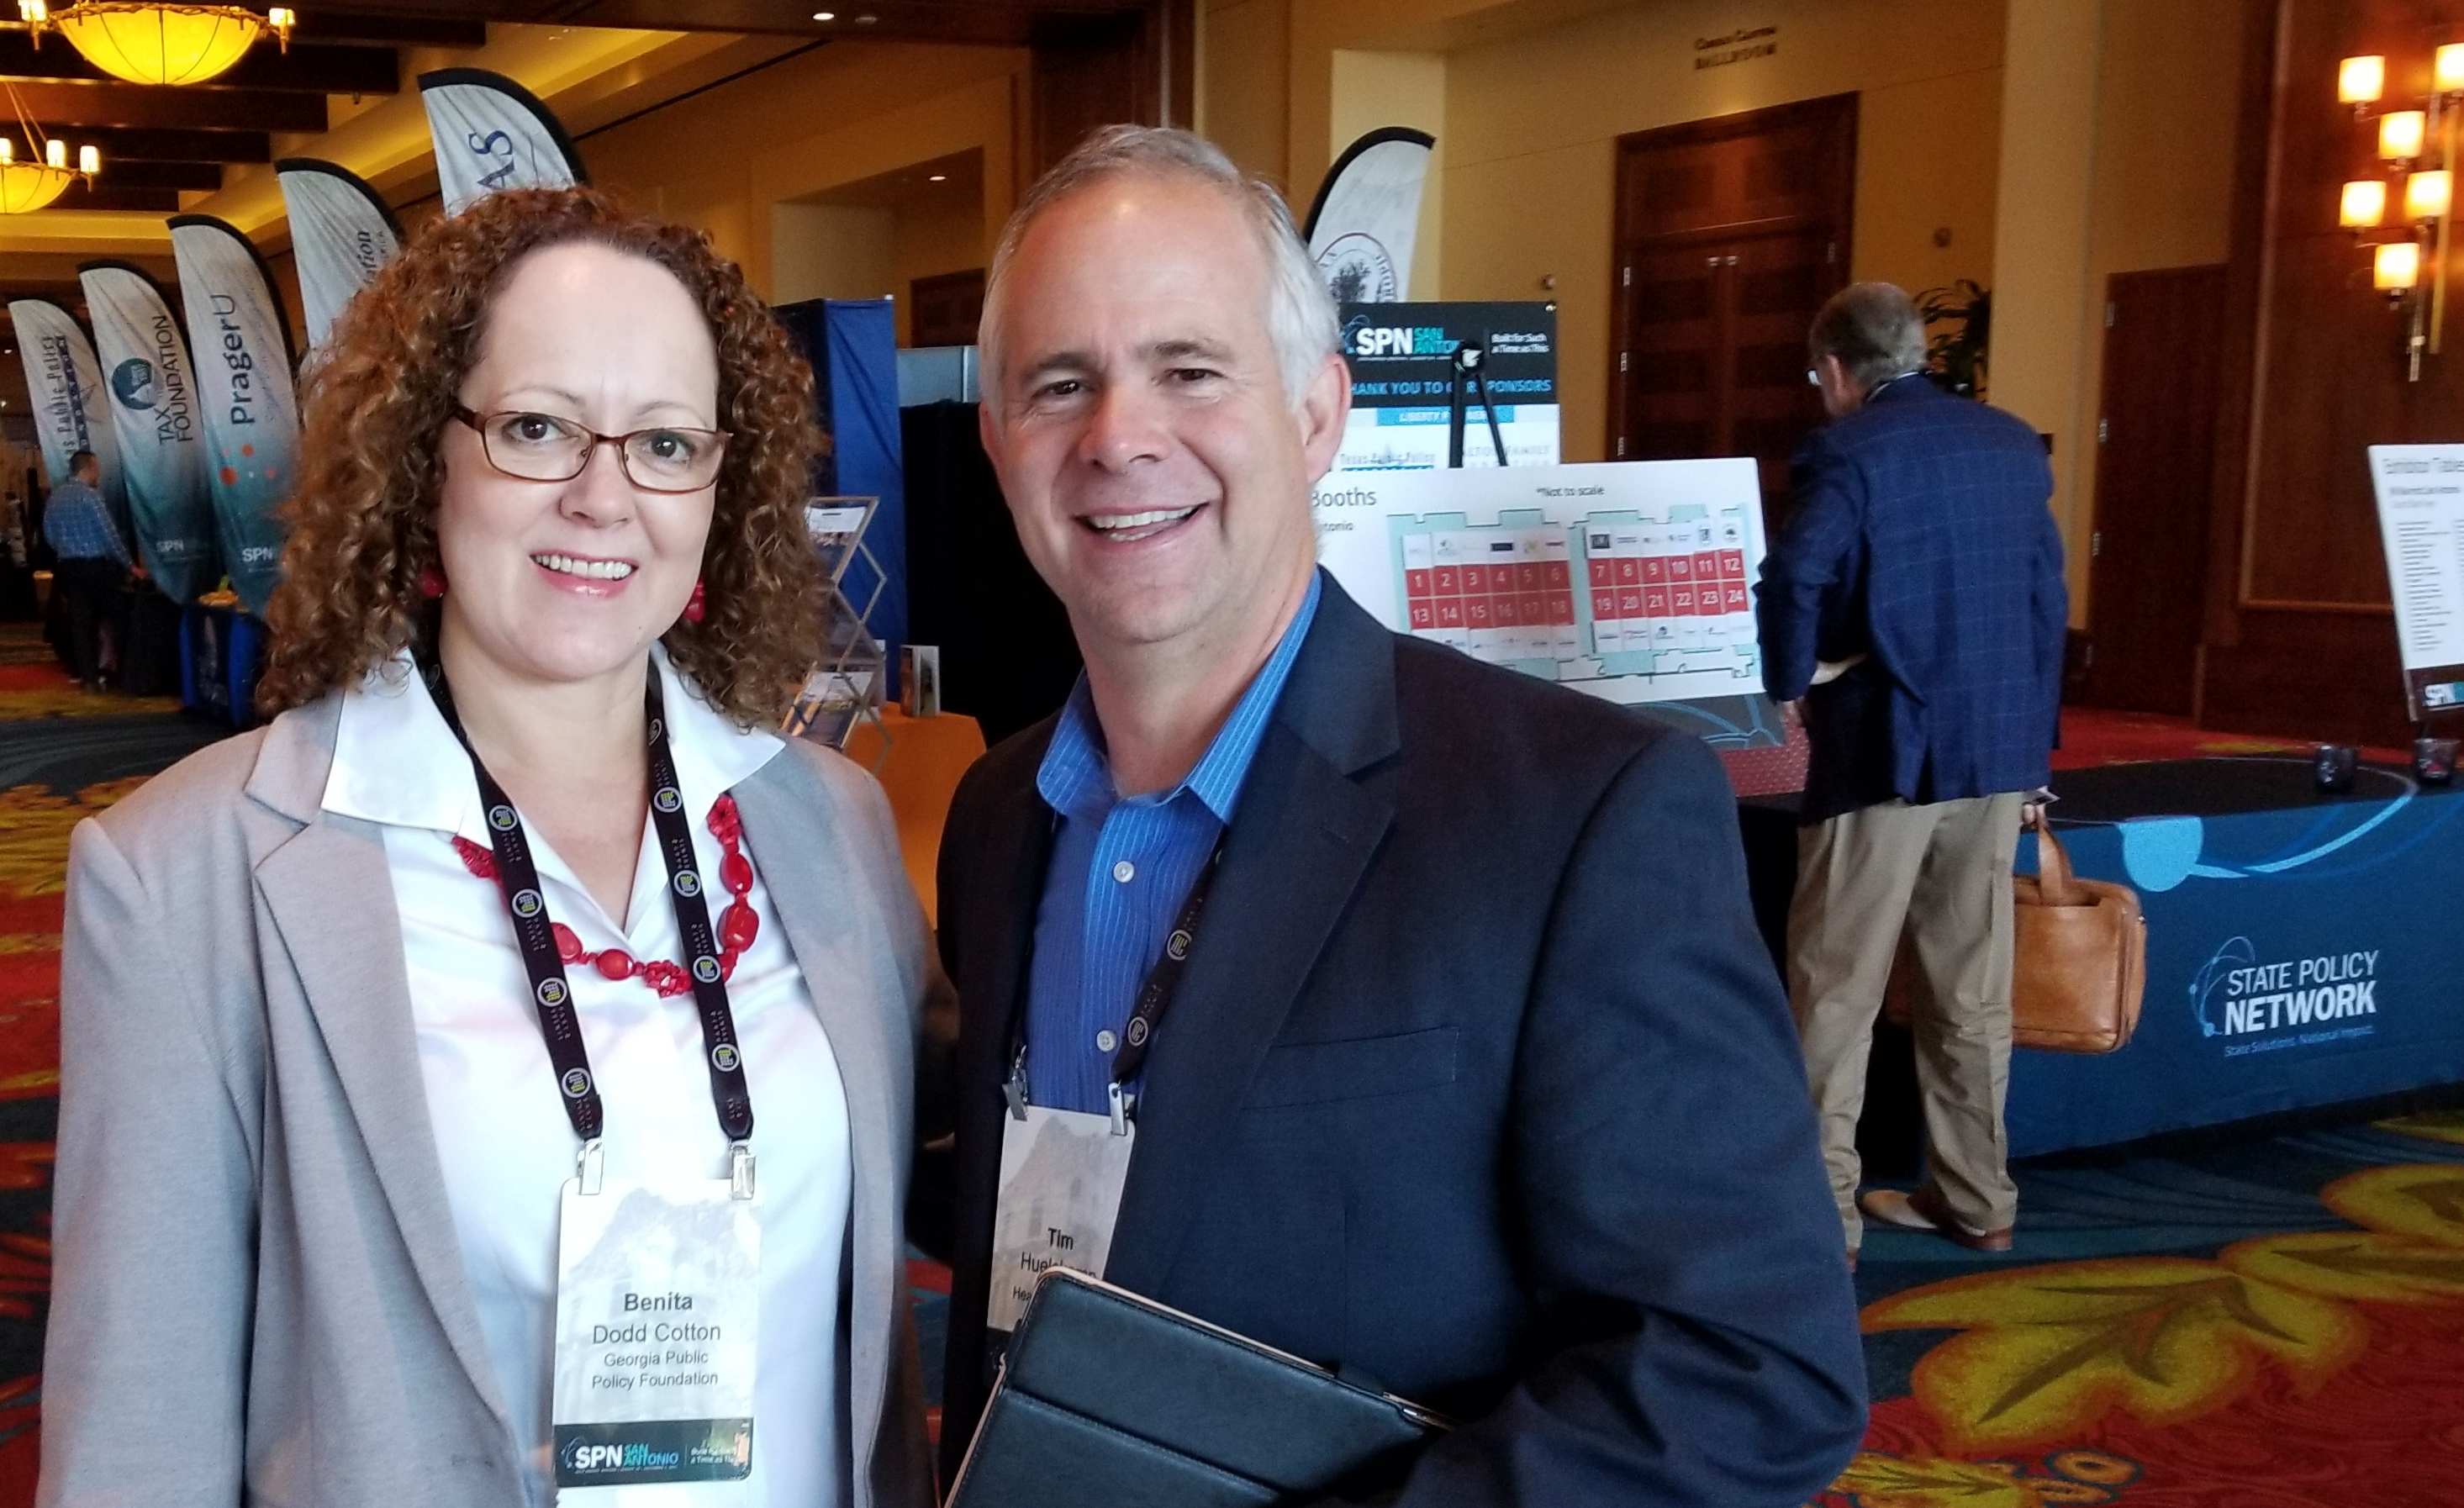 Foundation Vice President Benita Dodd met Dr. Tim Huelskamp, the new president of the Heartland Institute, at the 2017 State Policy Network annual conference in San Antonio, Texas. The former Congressman is the keynote speaker at the Georgia Legislative Policy Forum on October 13. (See Events for registration information)